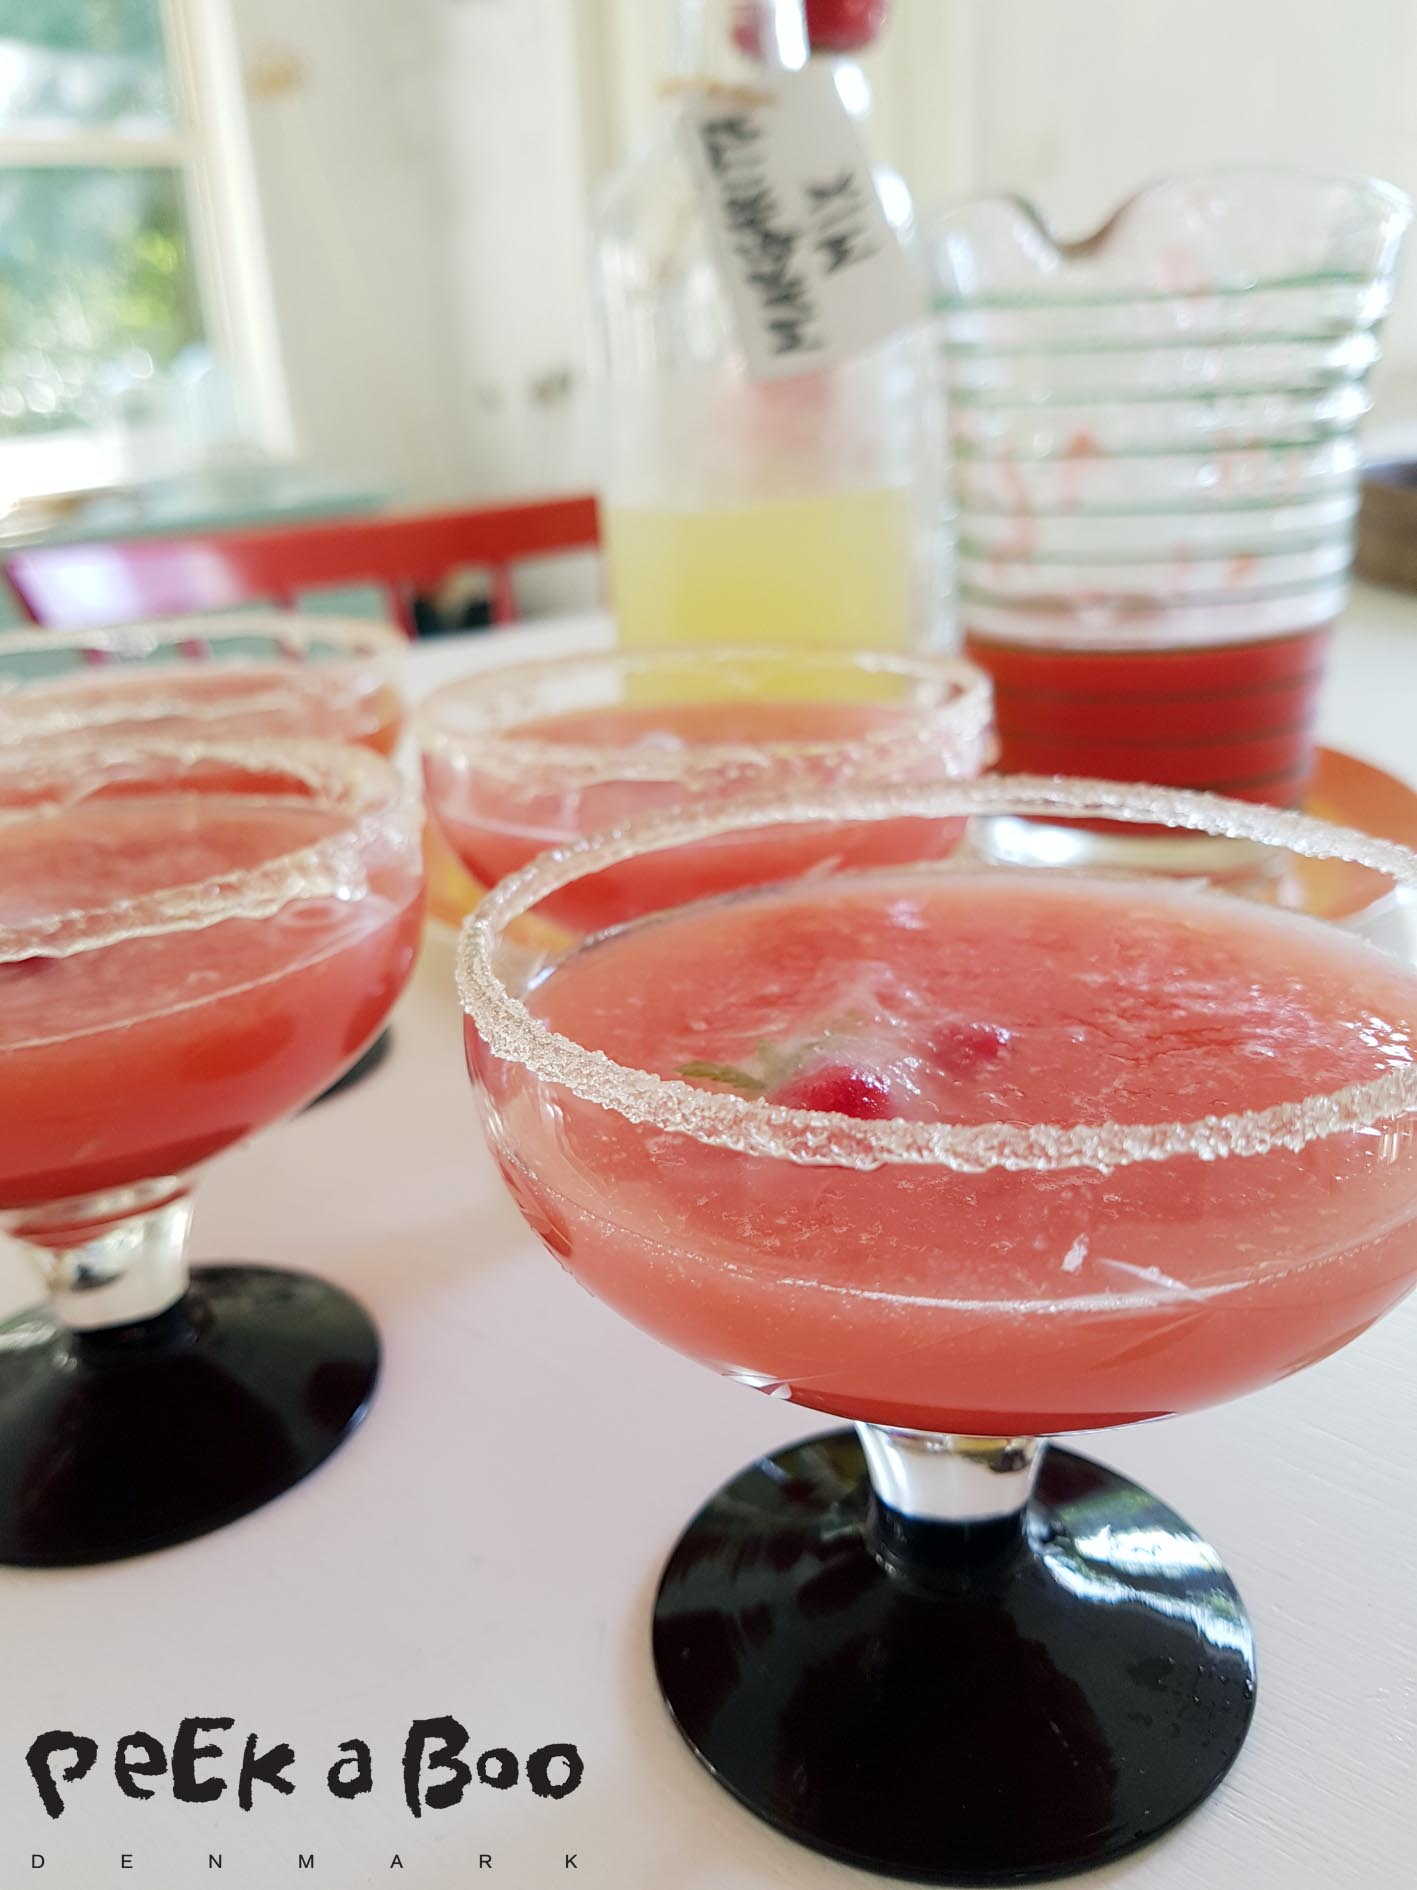 Add sugar to the glasses and icecubes to make them look even better.